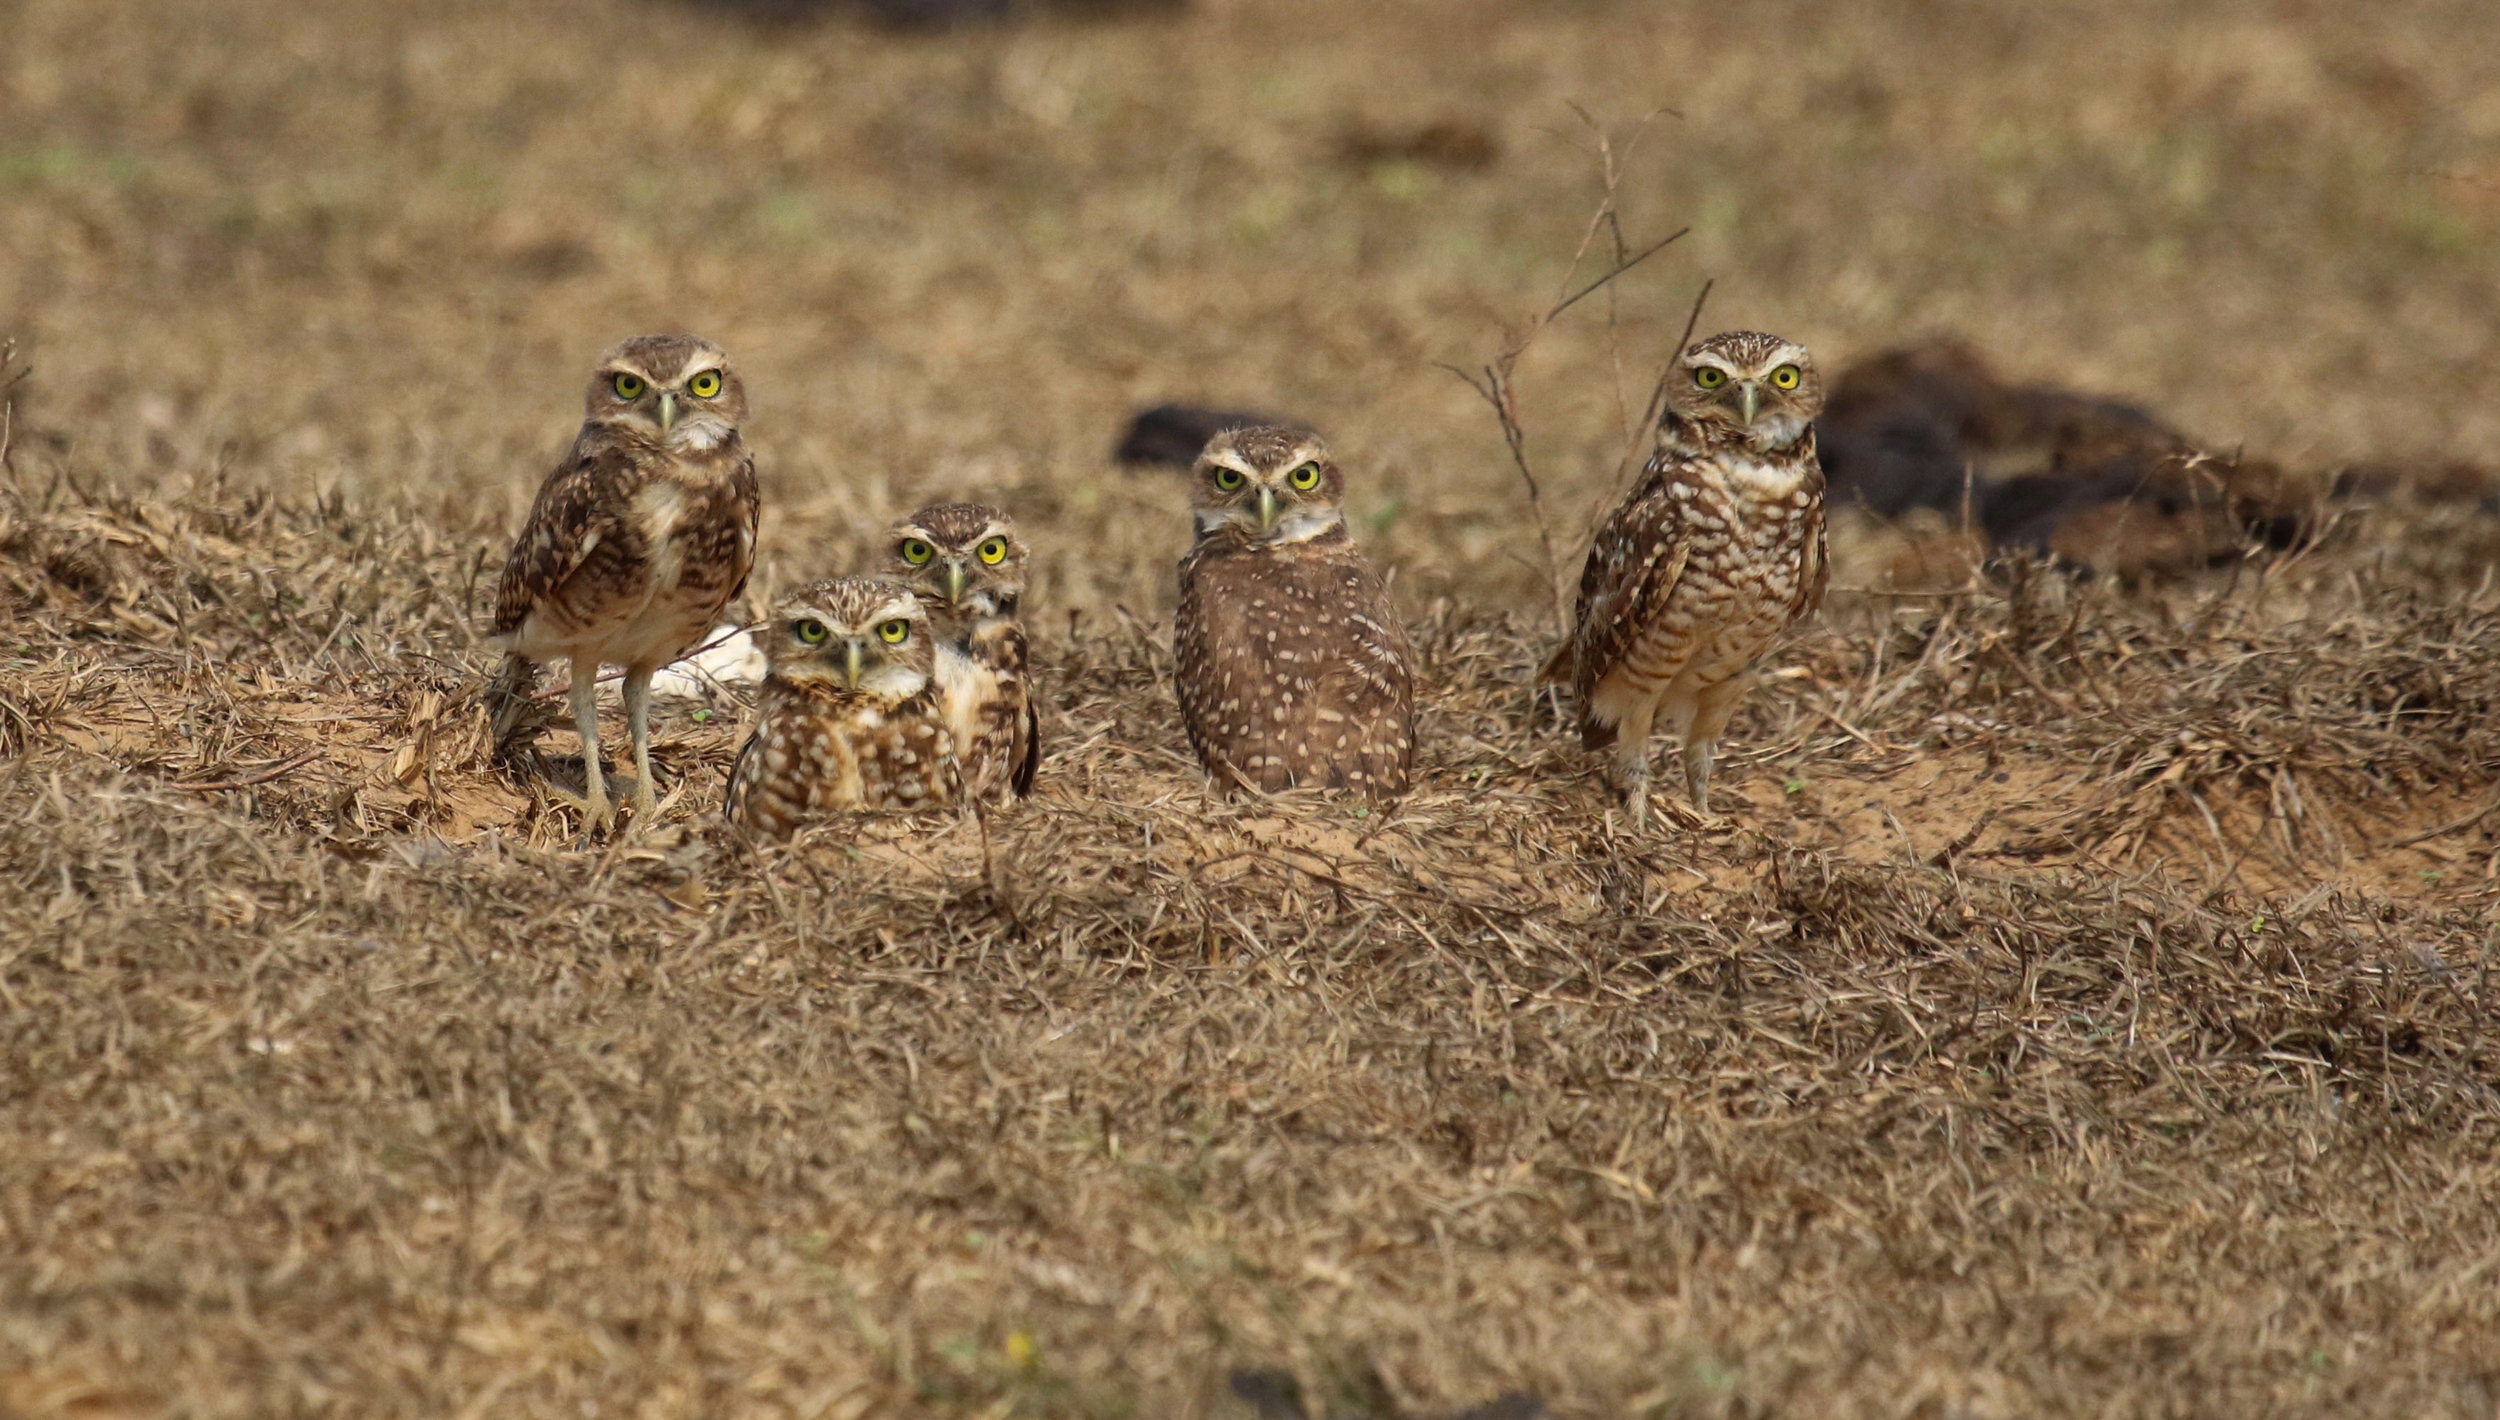 Family Burrowing Owls birds La Aurora Llanos Colombia by Millie Kerr -1.jpg